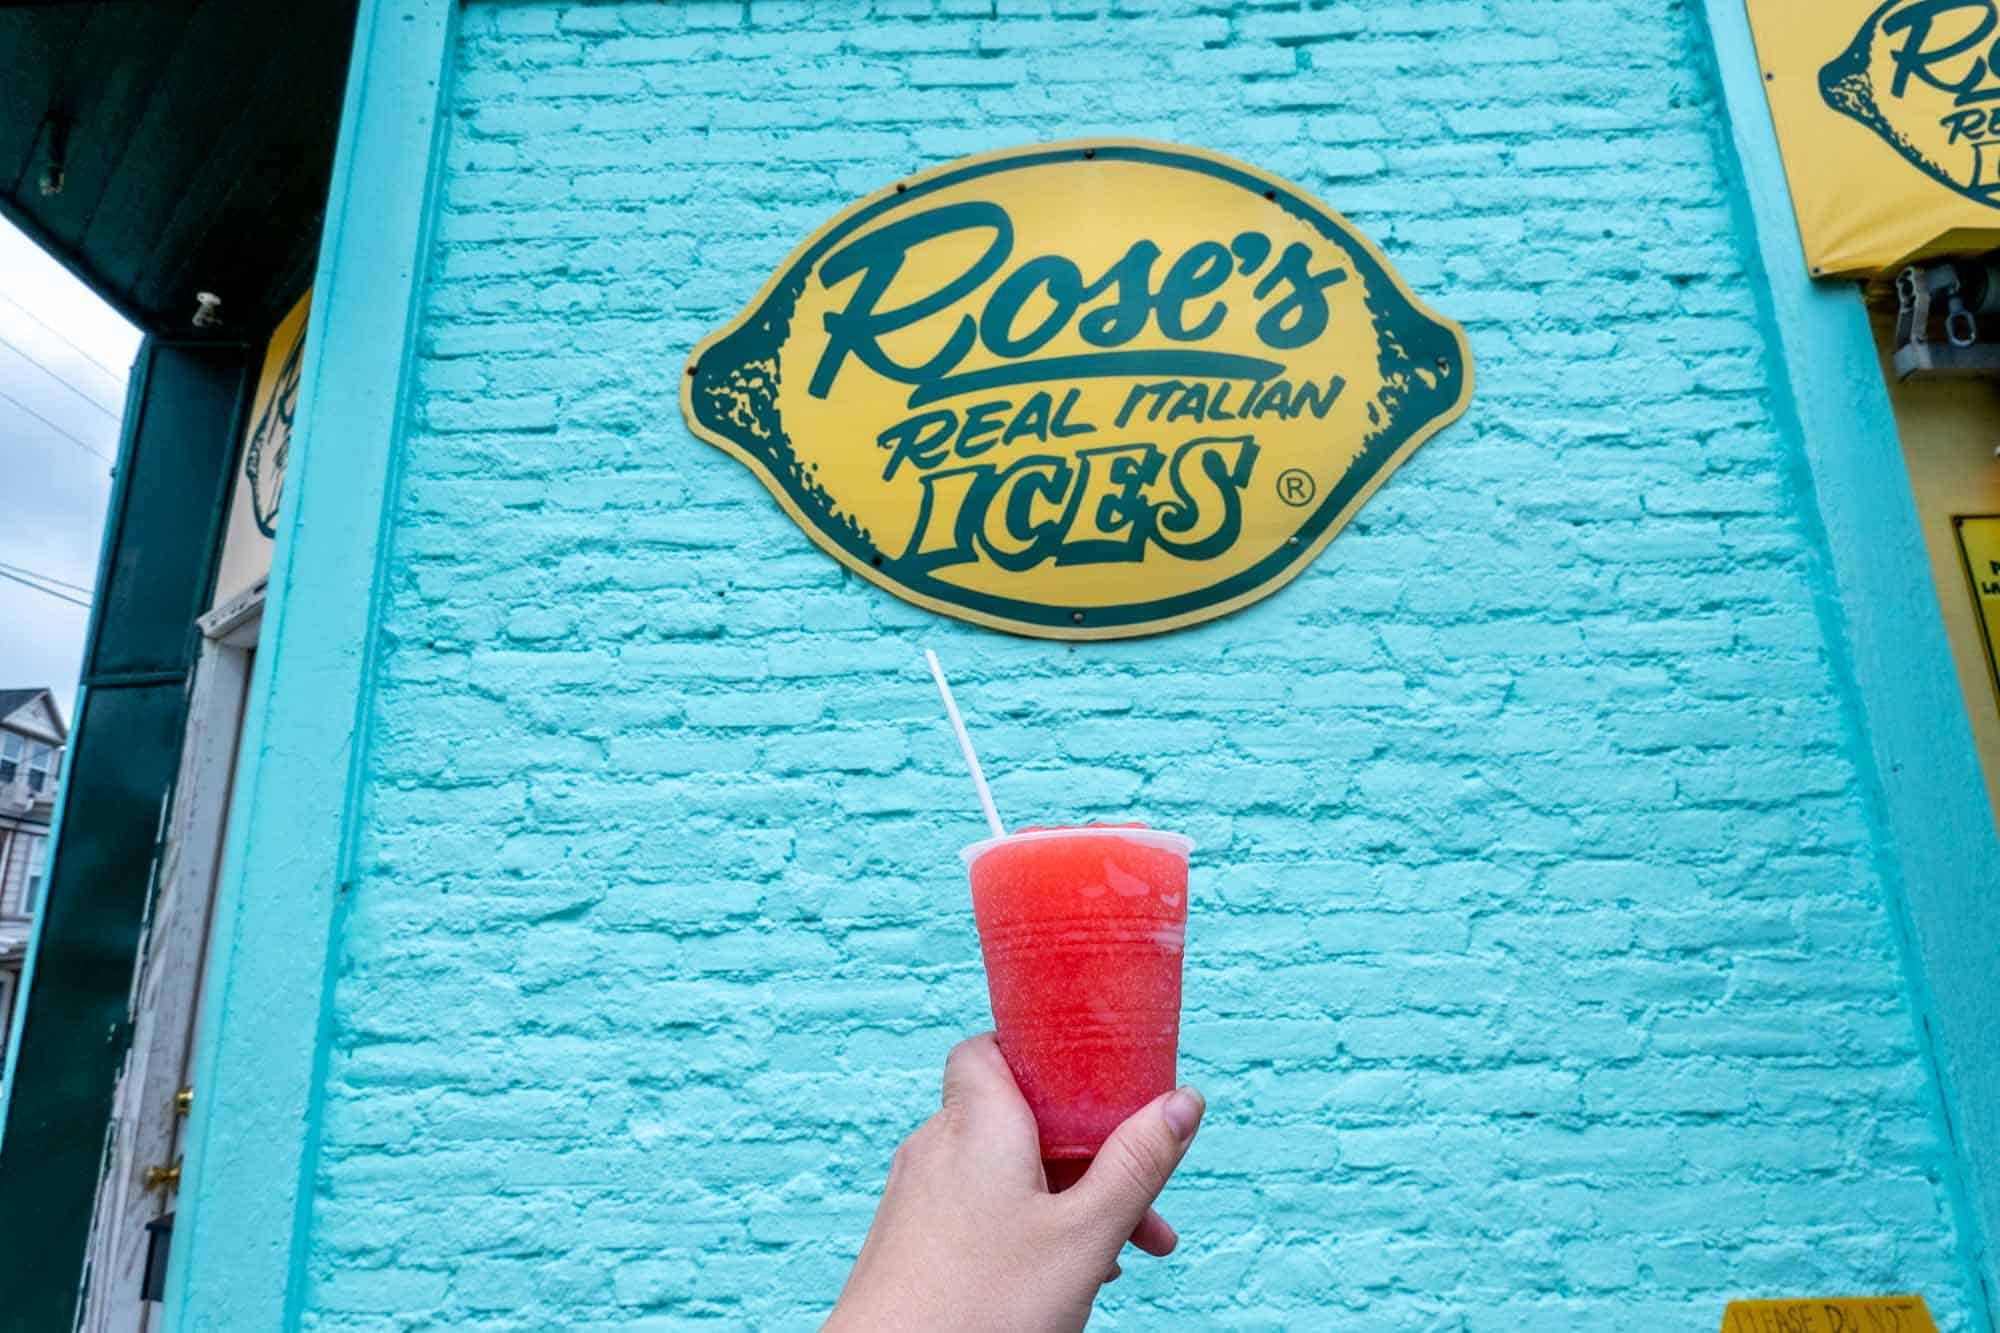 Cup filled with cherry ice in front of sign for Rose's Real Italian Ices